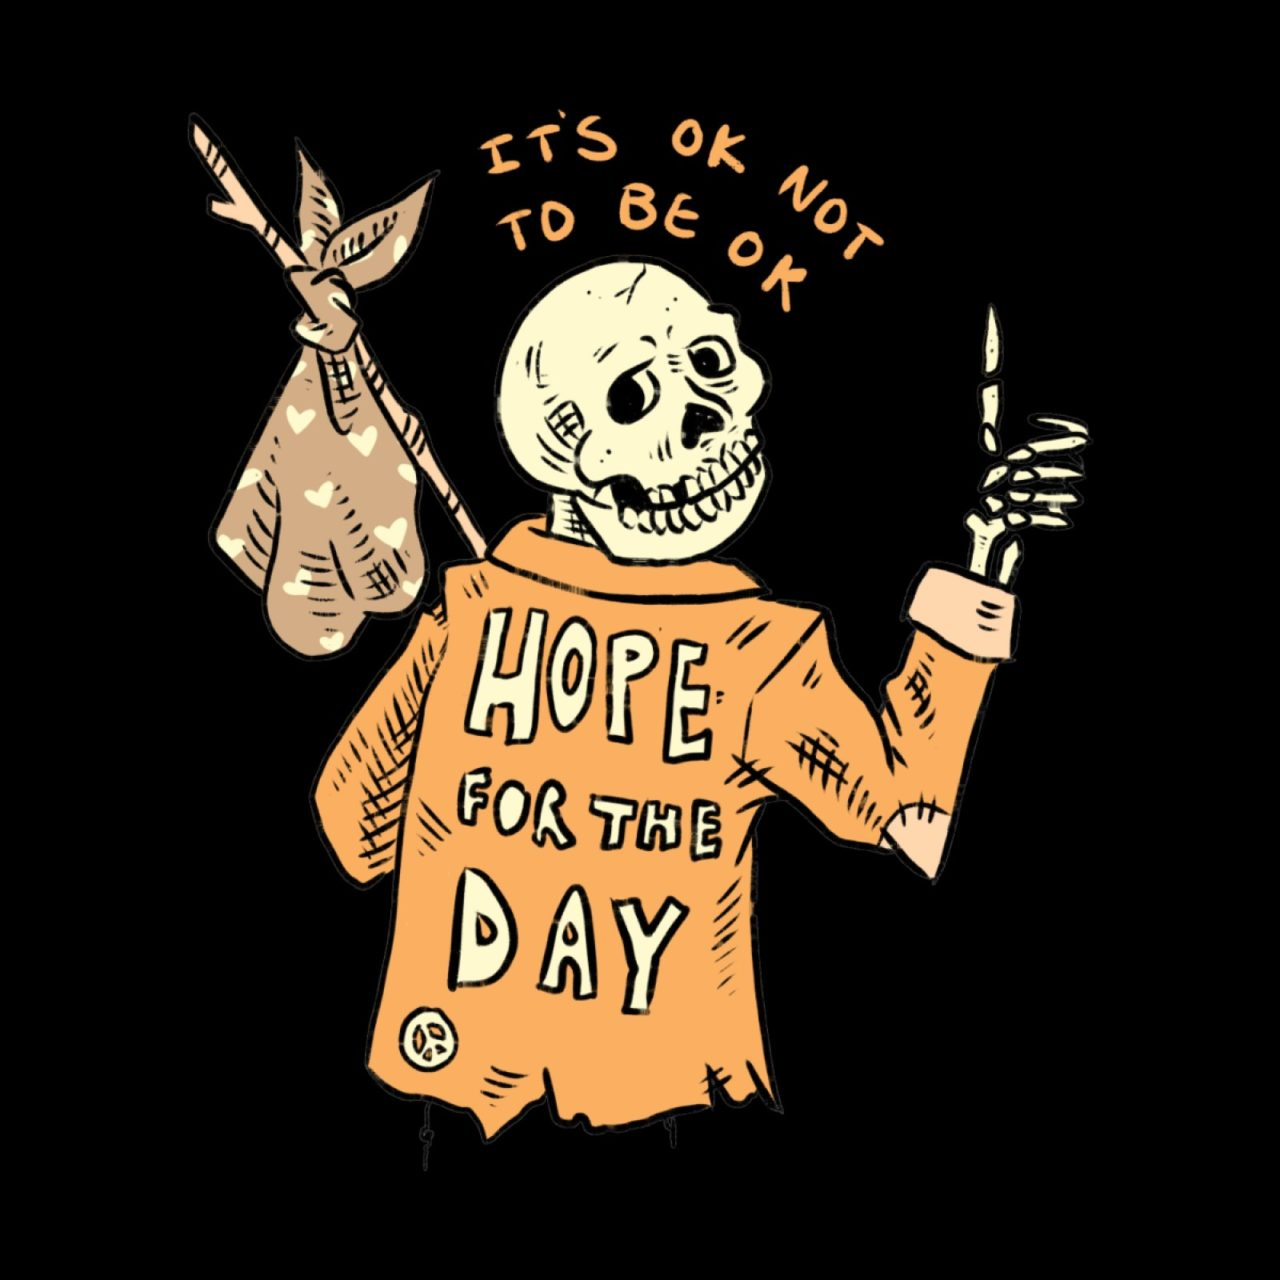 Karen Mooney's art for Hope for the Day